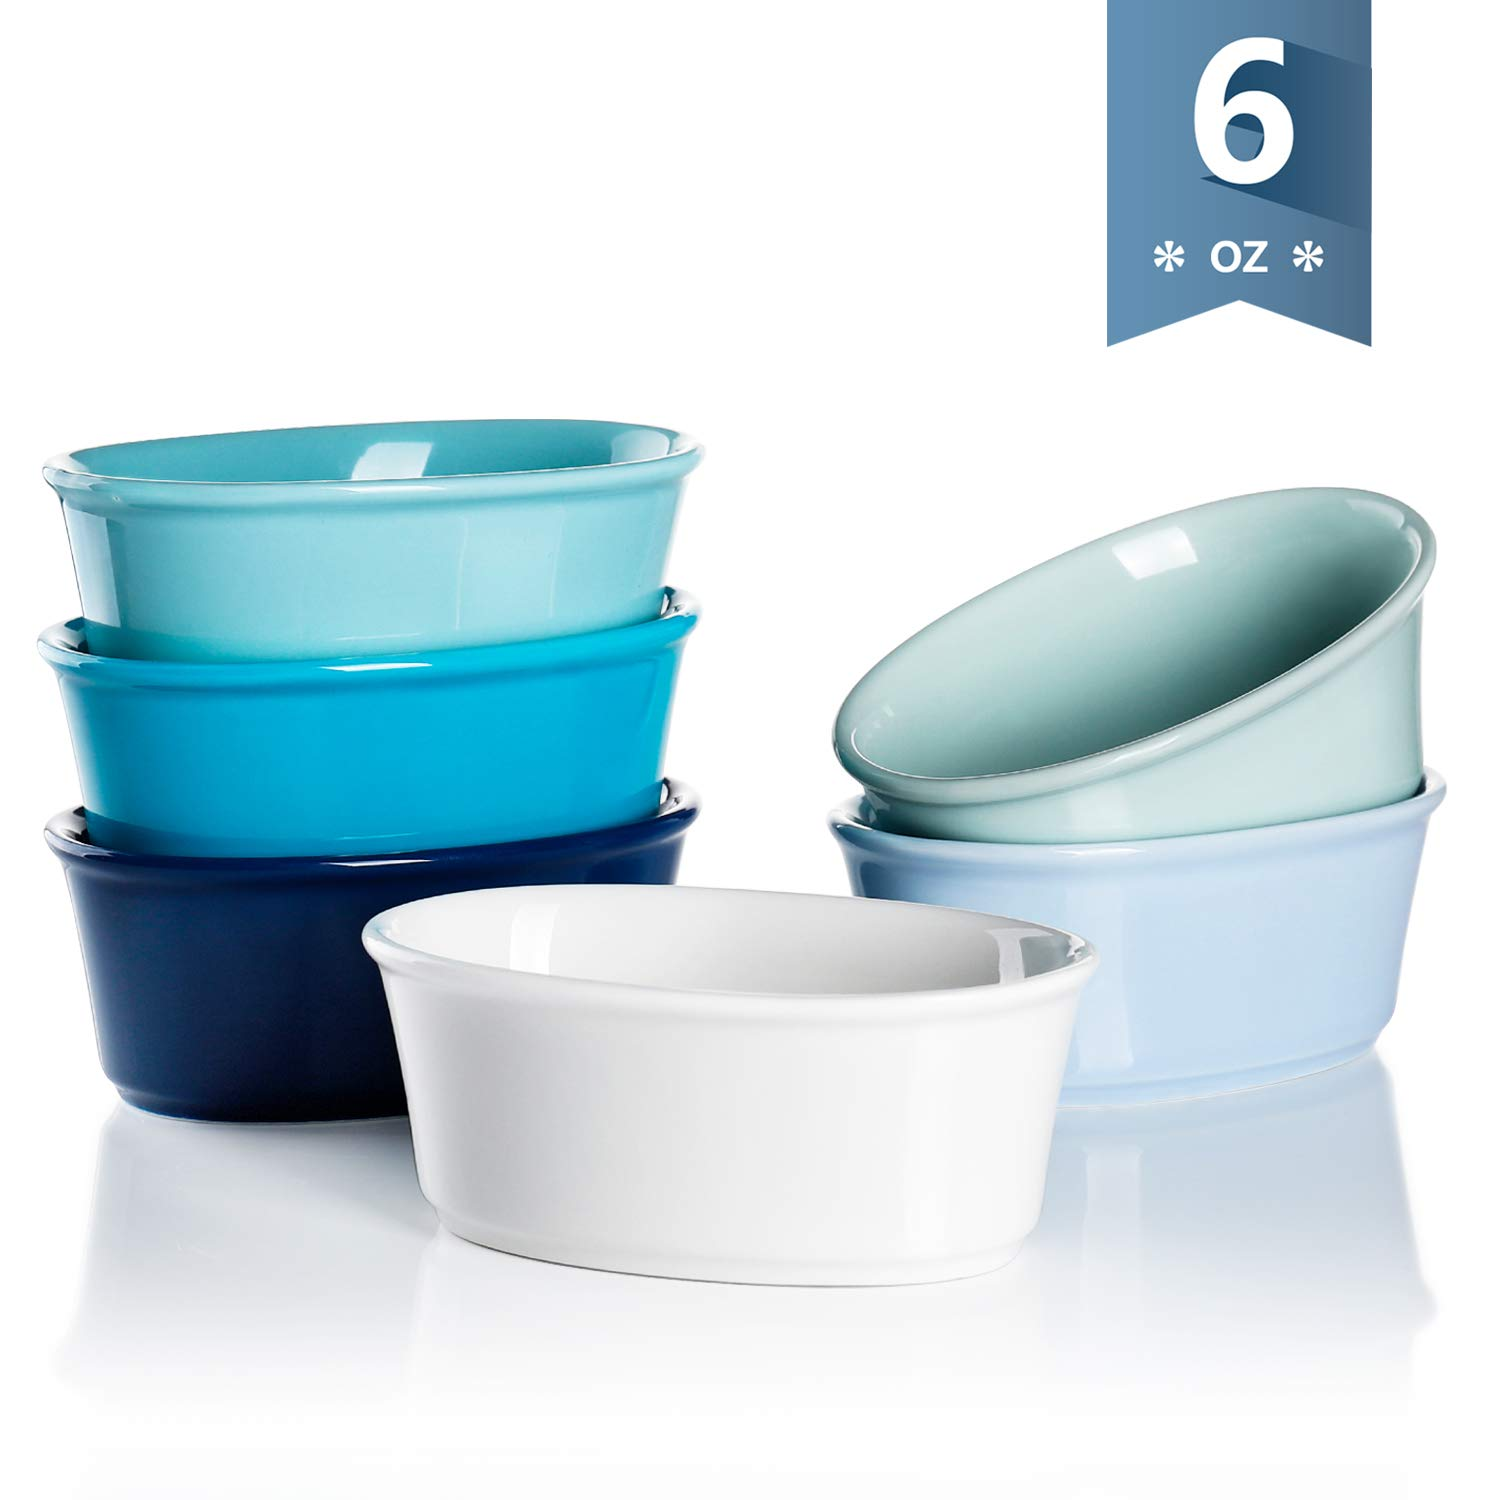 Sweese 506.003 Porcelain Souffle Dishes 6 Ounce, Oval Ramekins for Baking, Set of 6, Cool Assorted Color by Sweese